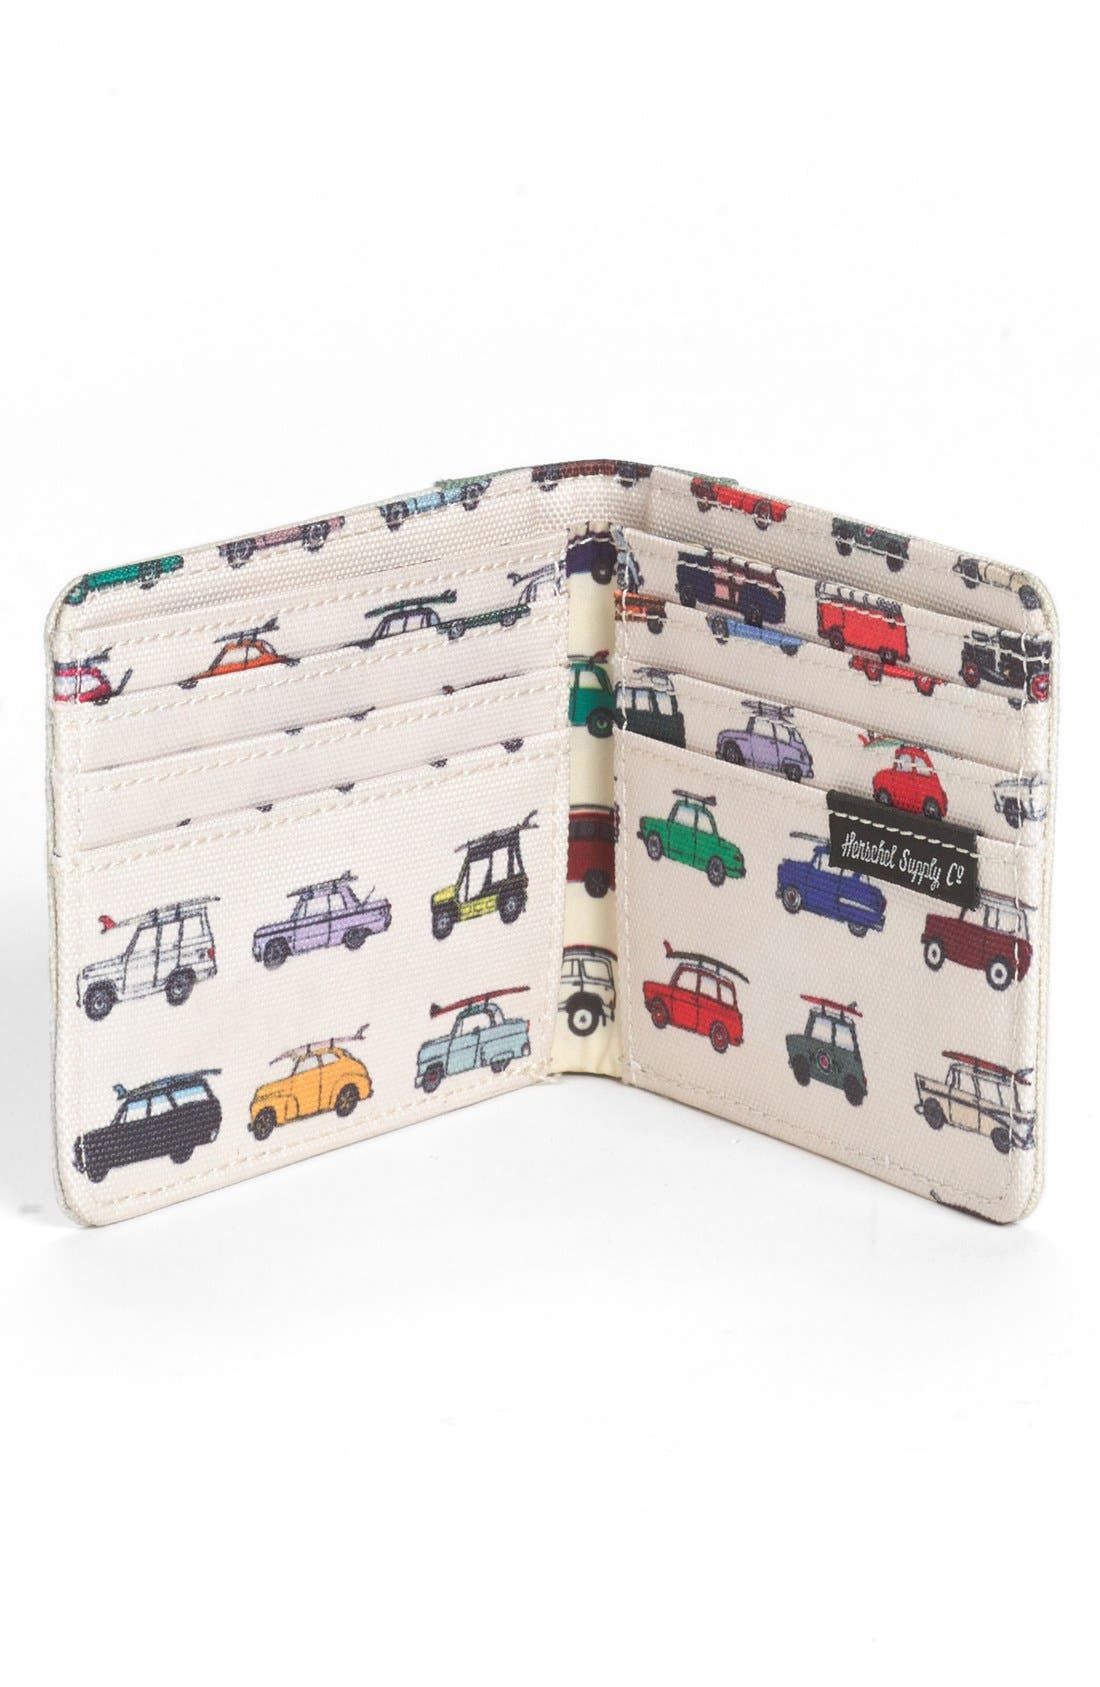 Alternate Image 3  - Herschel Supply Co. 'Edward - Rad Cars with Rad Surfboards Collection' Wallet